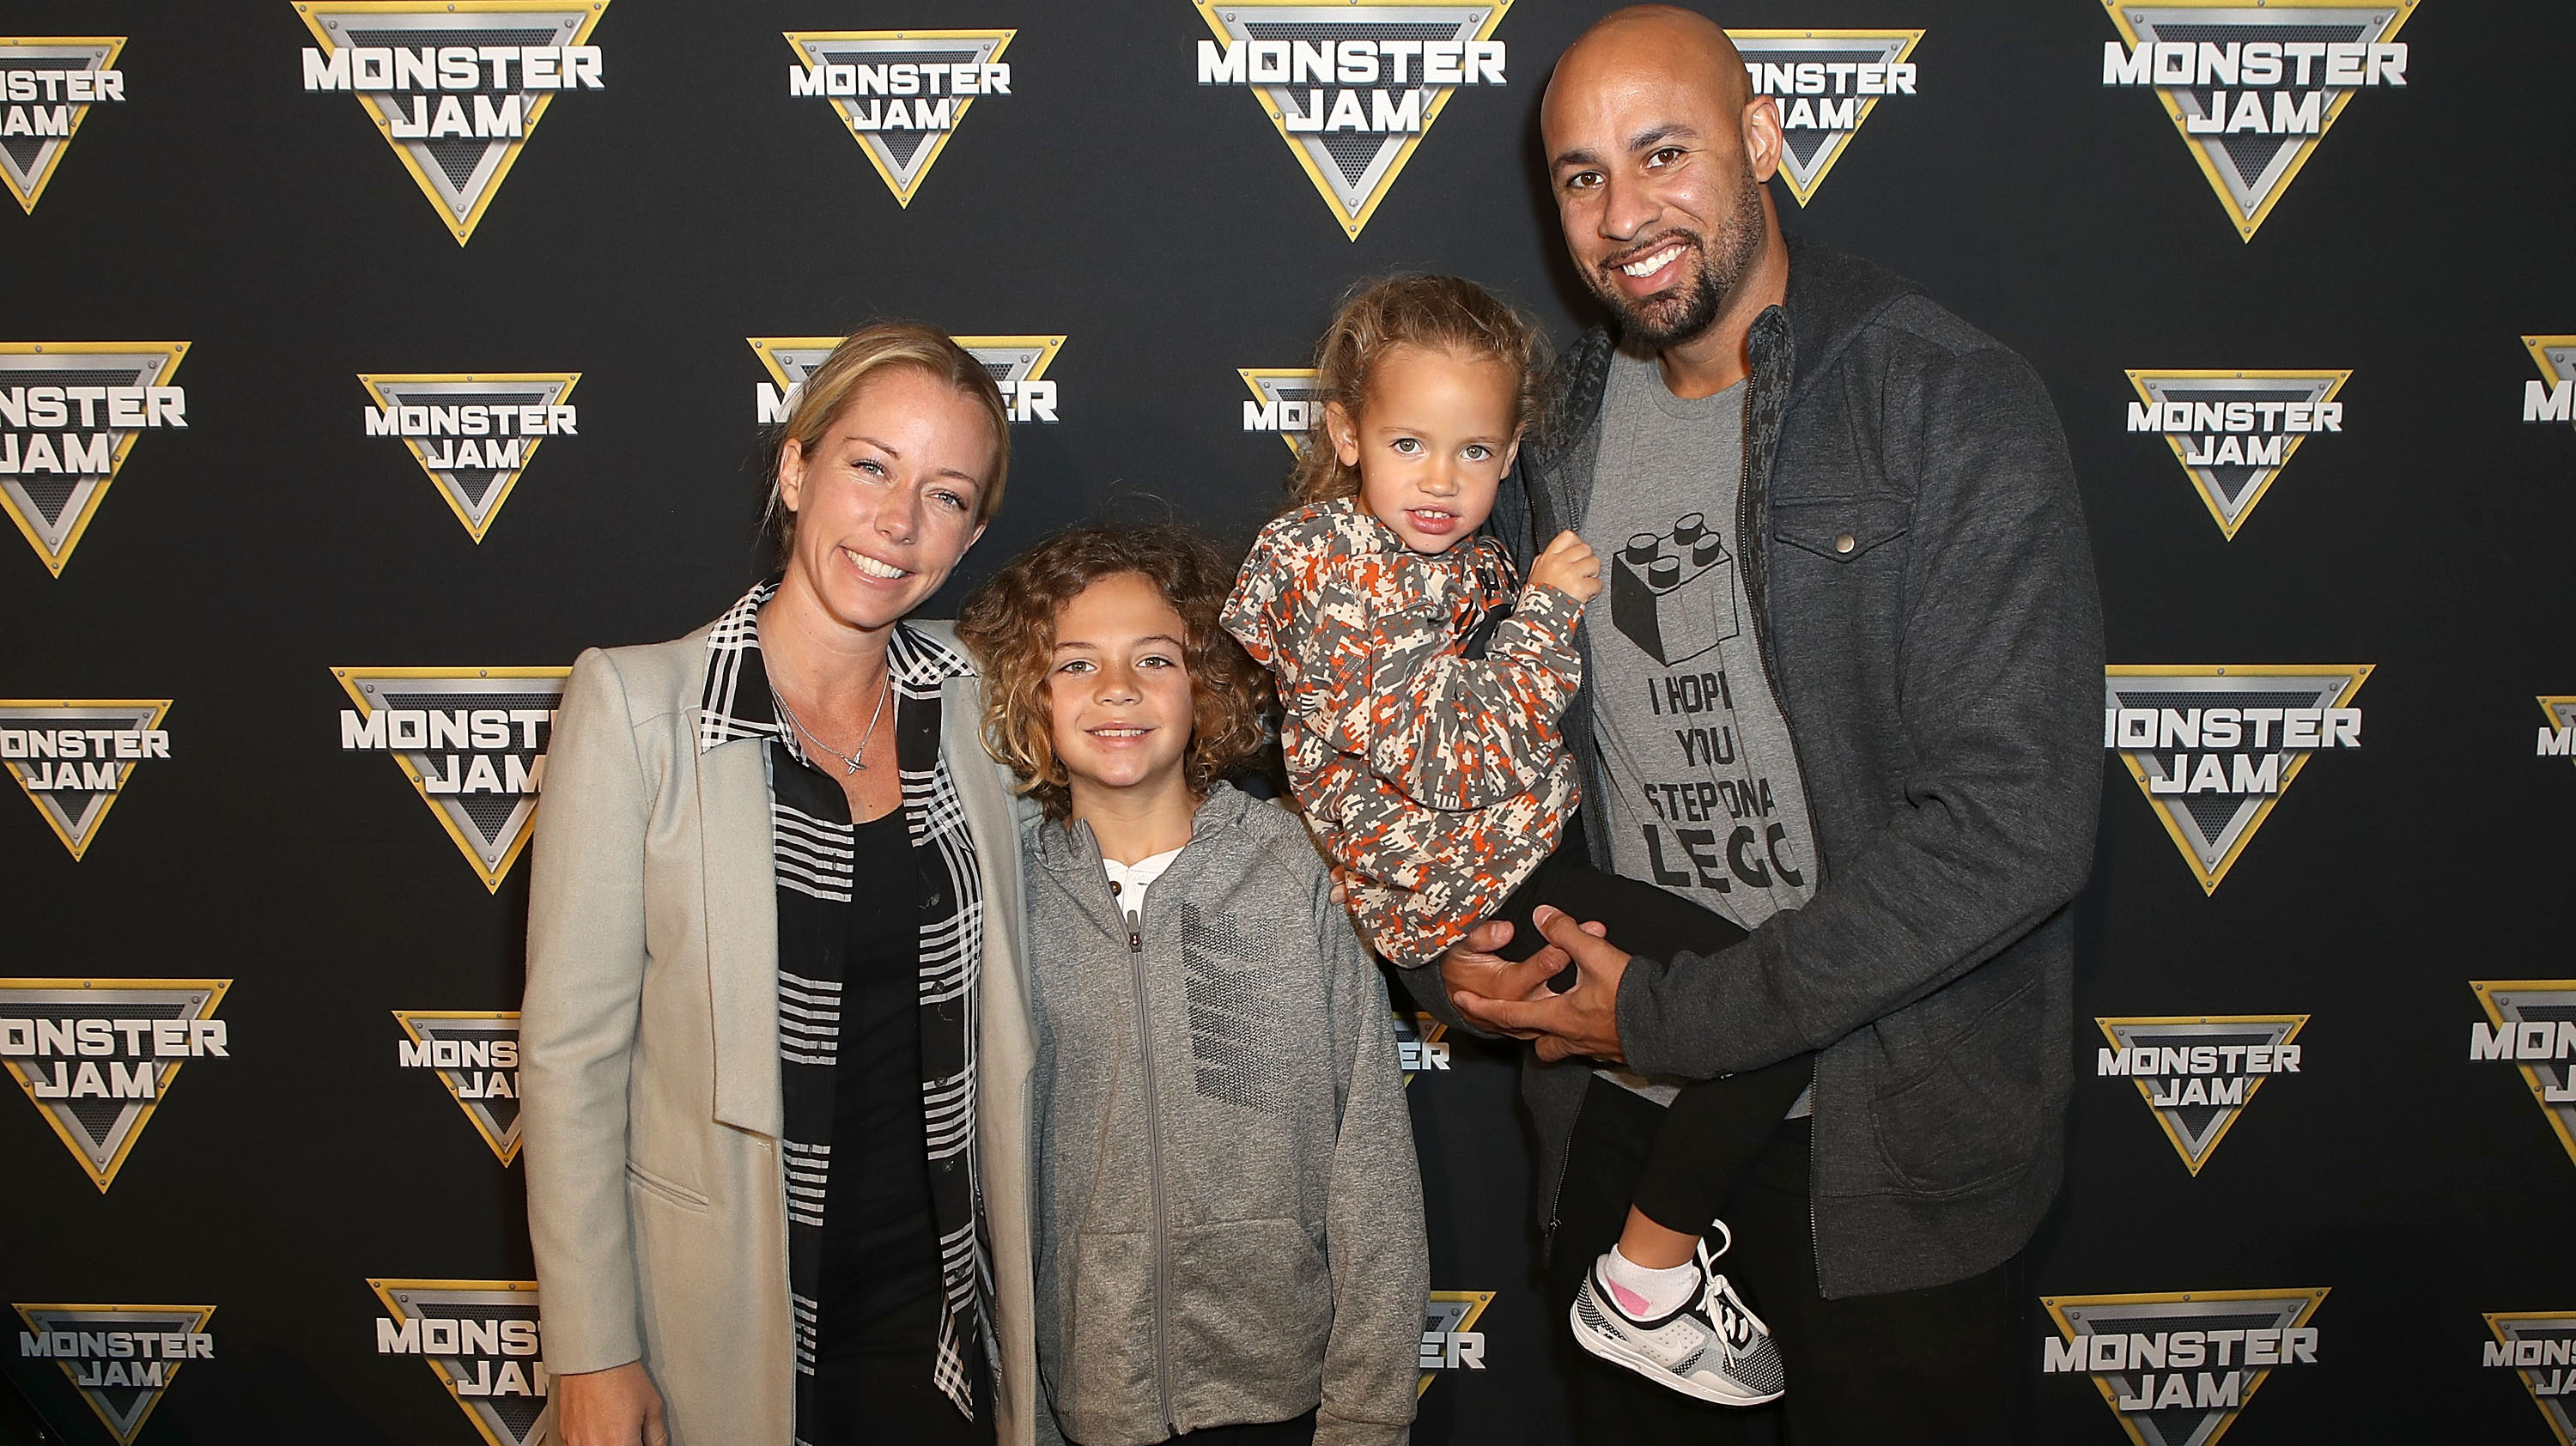 hank-baskett-kendra-wilkinson-divorce-instagram